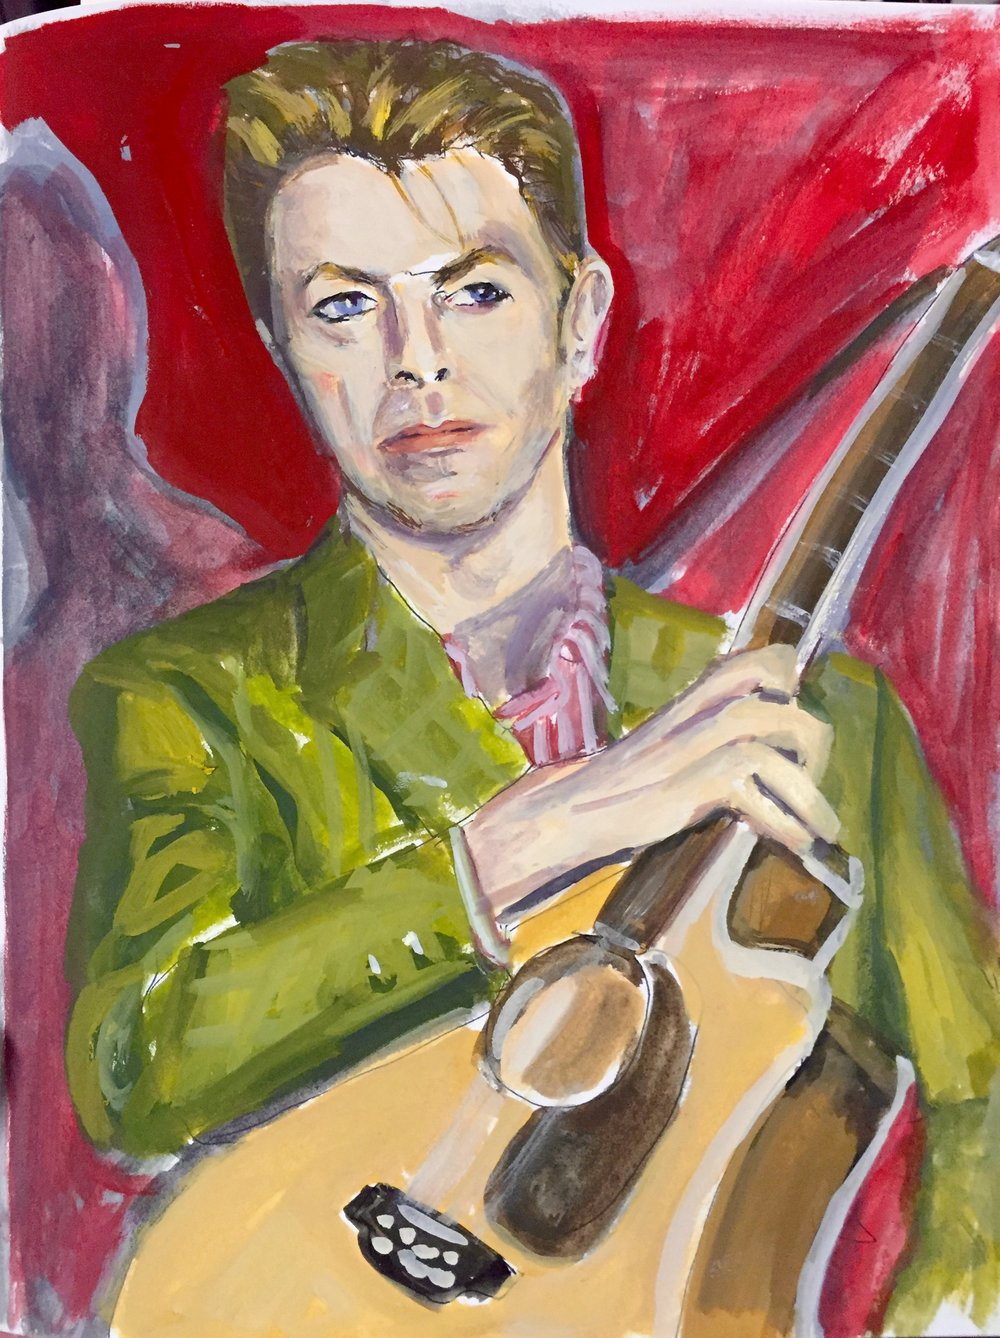 DAVID BOWIE (2015). Gouache on paper, 8 x 10 inches